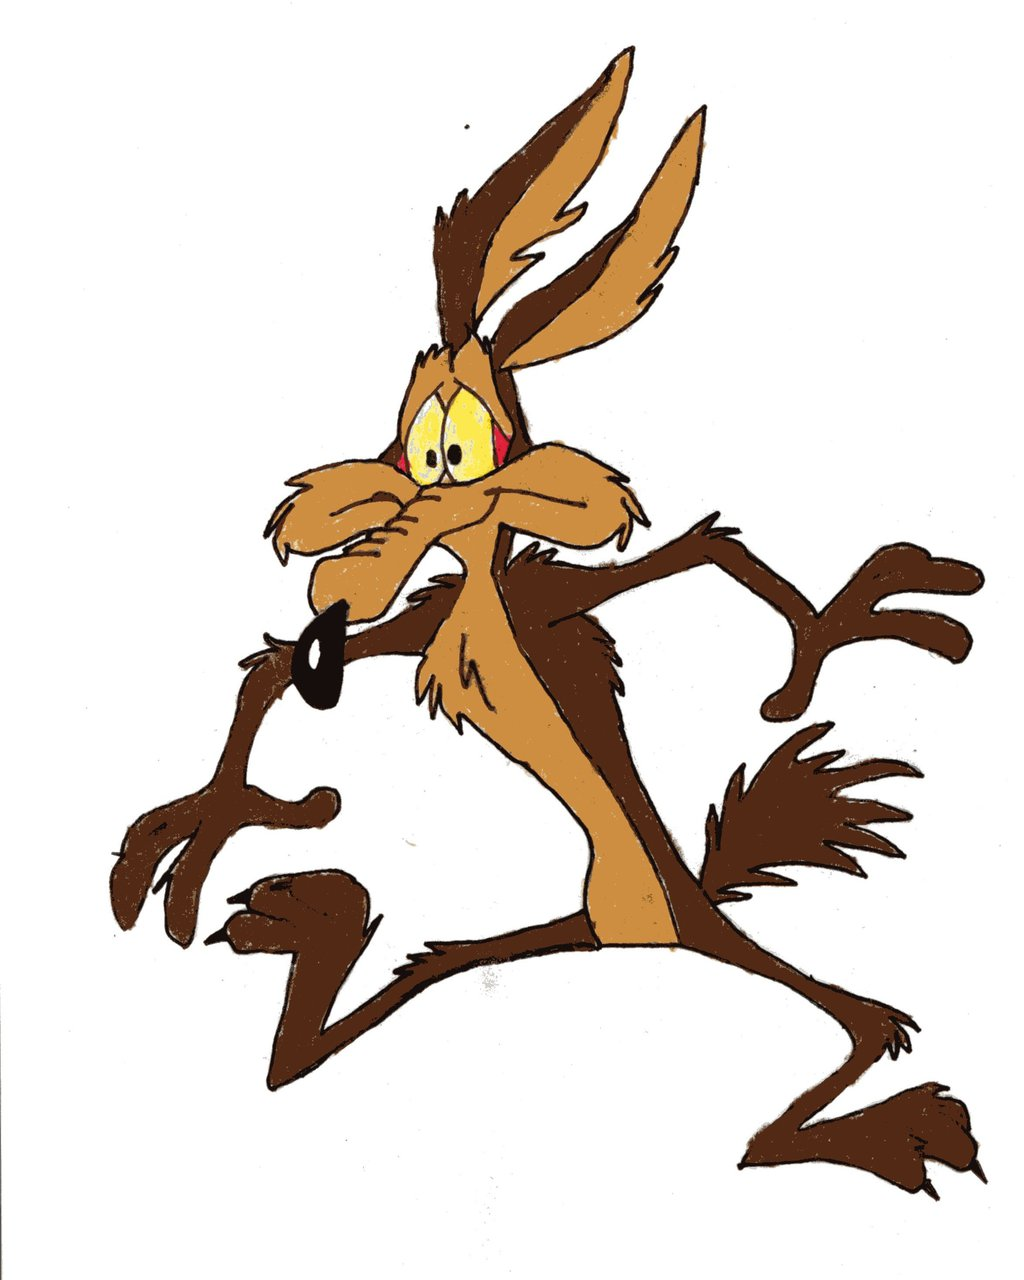 1024x1280 > Wile E Coyote Wallpapers